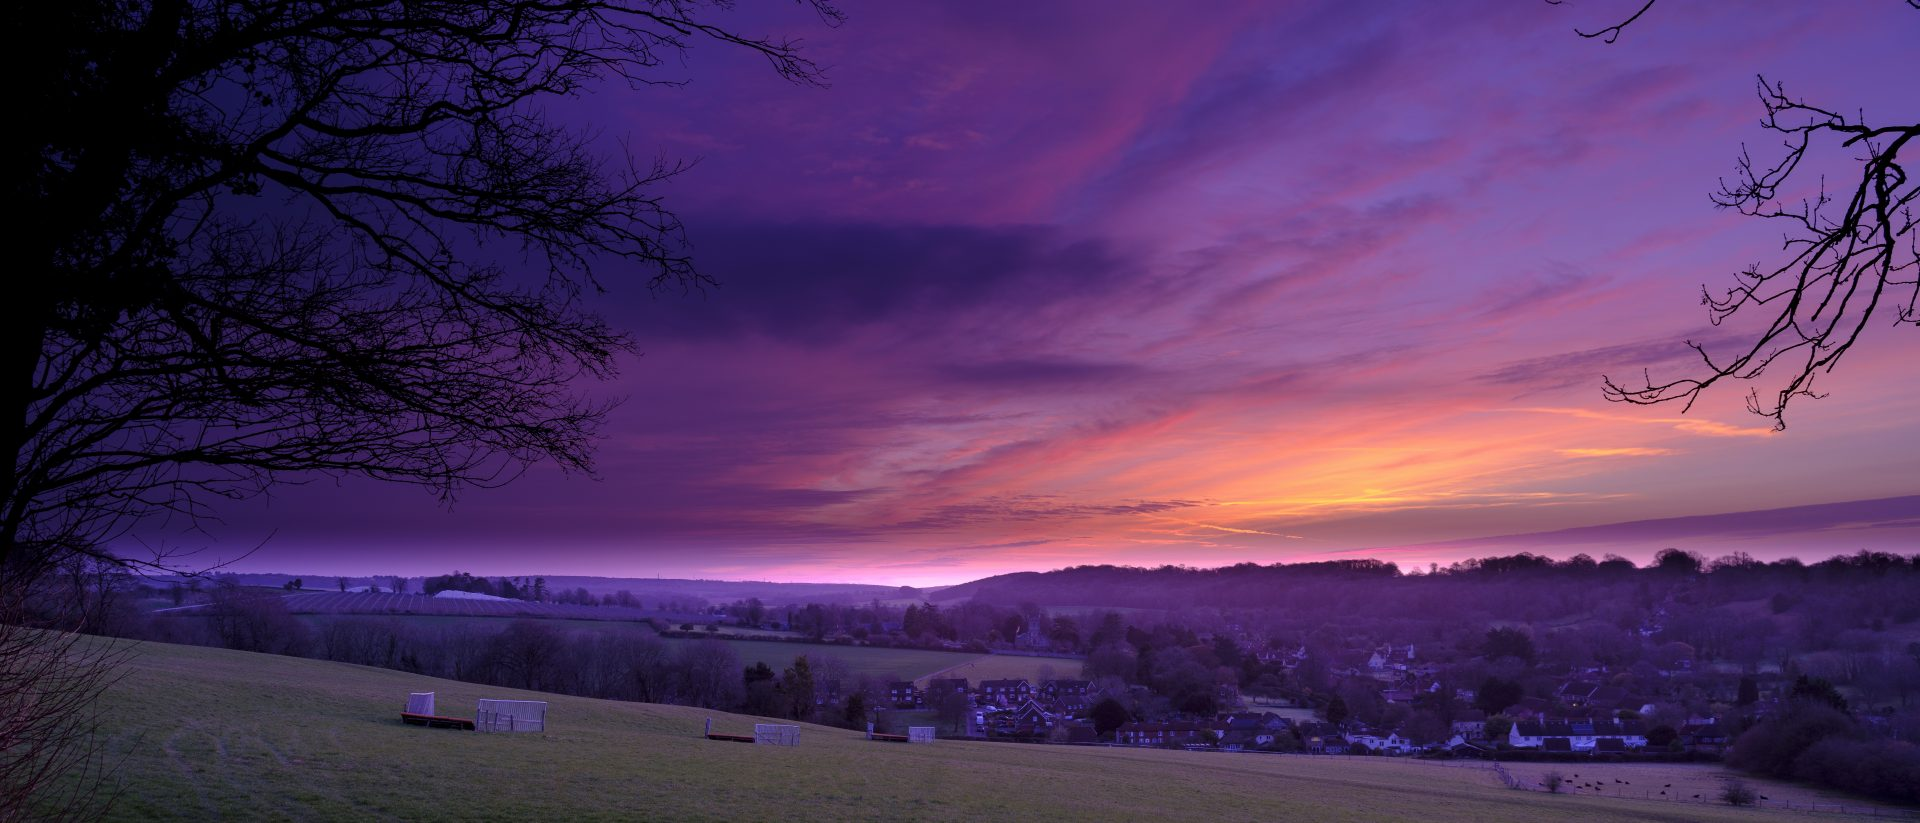 Spring sunrise over the village of Hambledon, Hampshire.  The village lies within the South Downs National Park, one of the UK's newest national parks created on 1 April 2011.